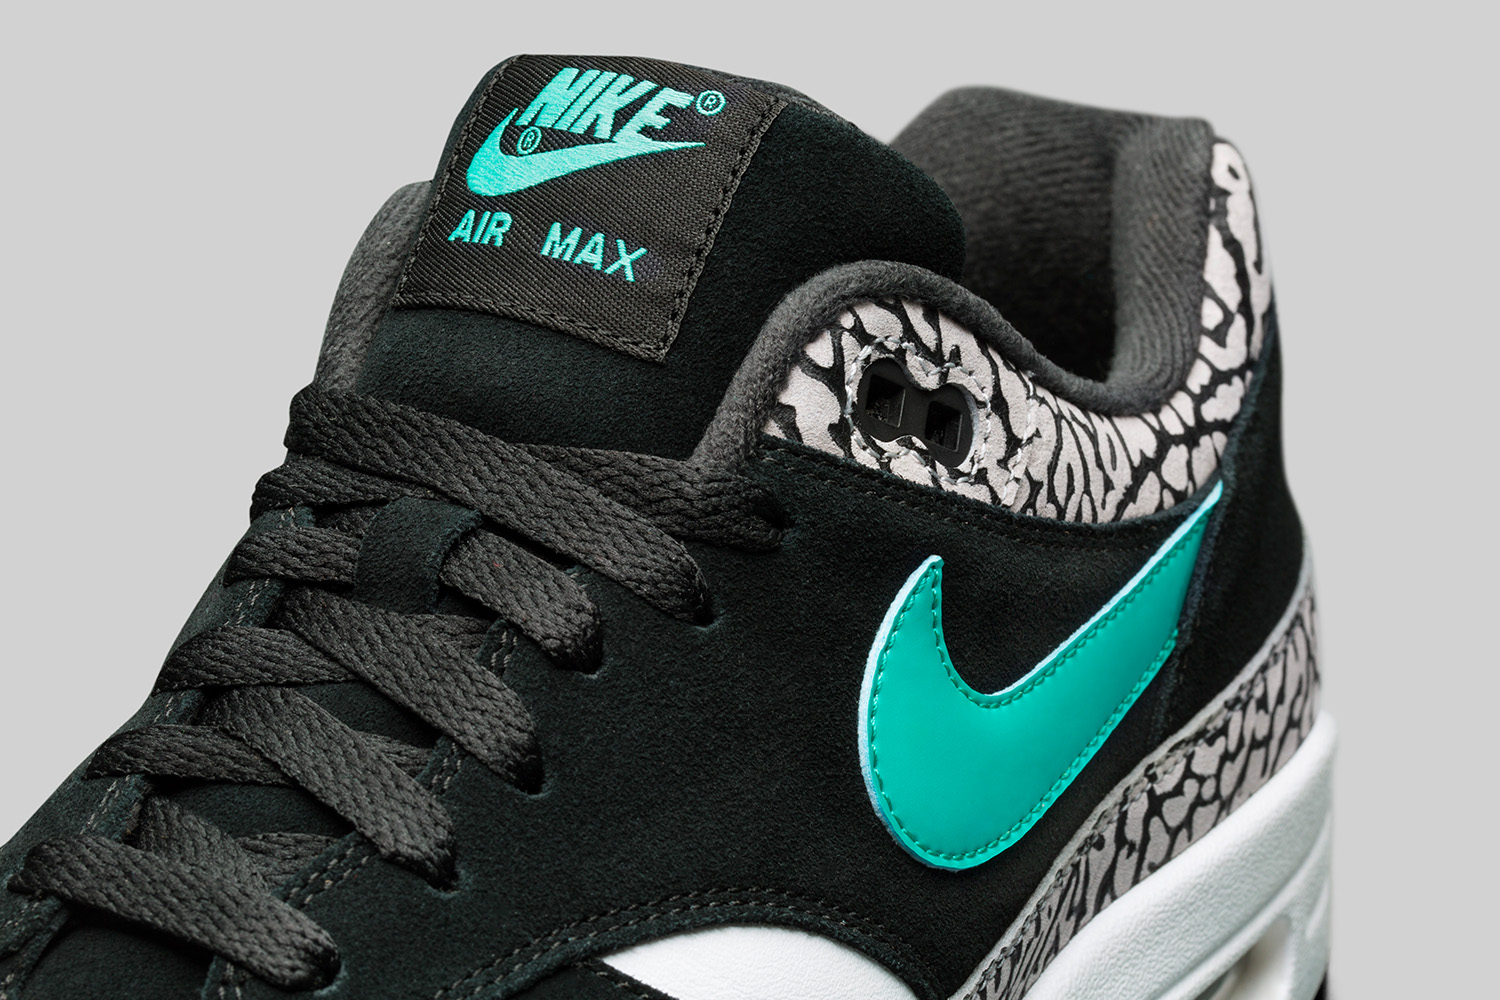 NHBL Nike Atmos Air Max Make Its Long Awaited Return With